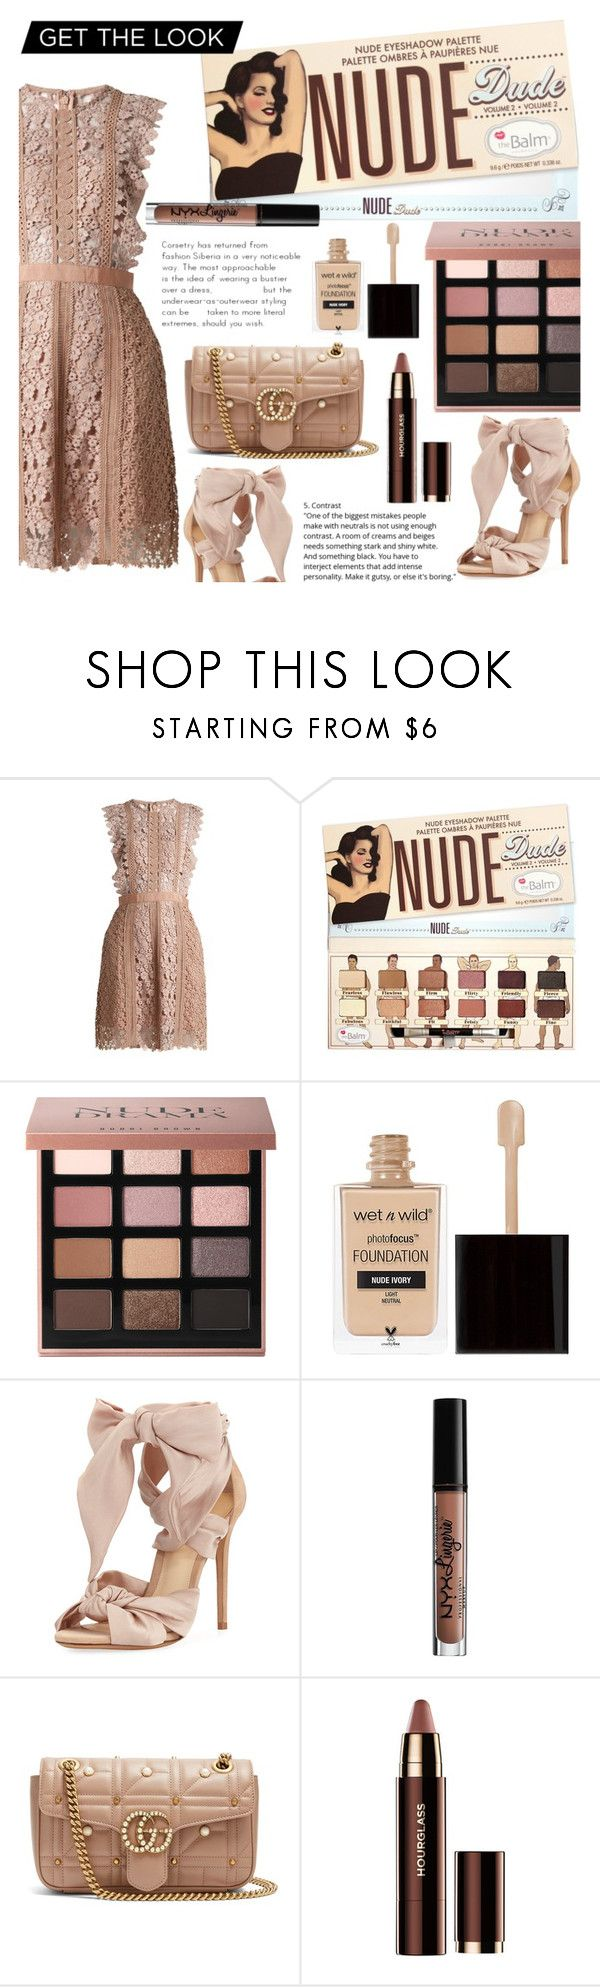 """Nude LOOK"" by crochetragrug ❤ liked on Polyvore featuring self-portrait, Bobbi Brown Cosmetics, Wet n Wild, Alexandre Birman, Charlotte Russe and Gucci"